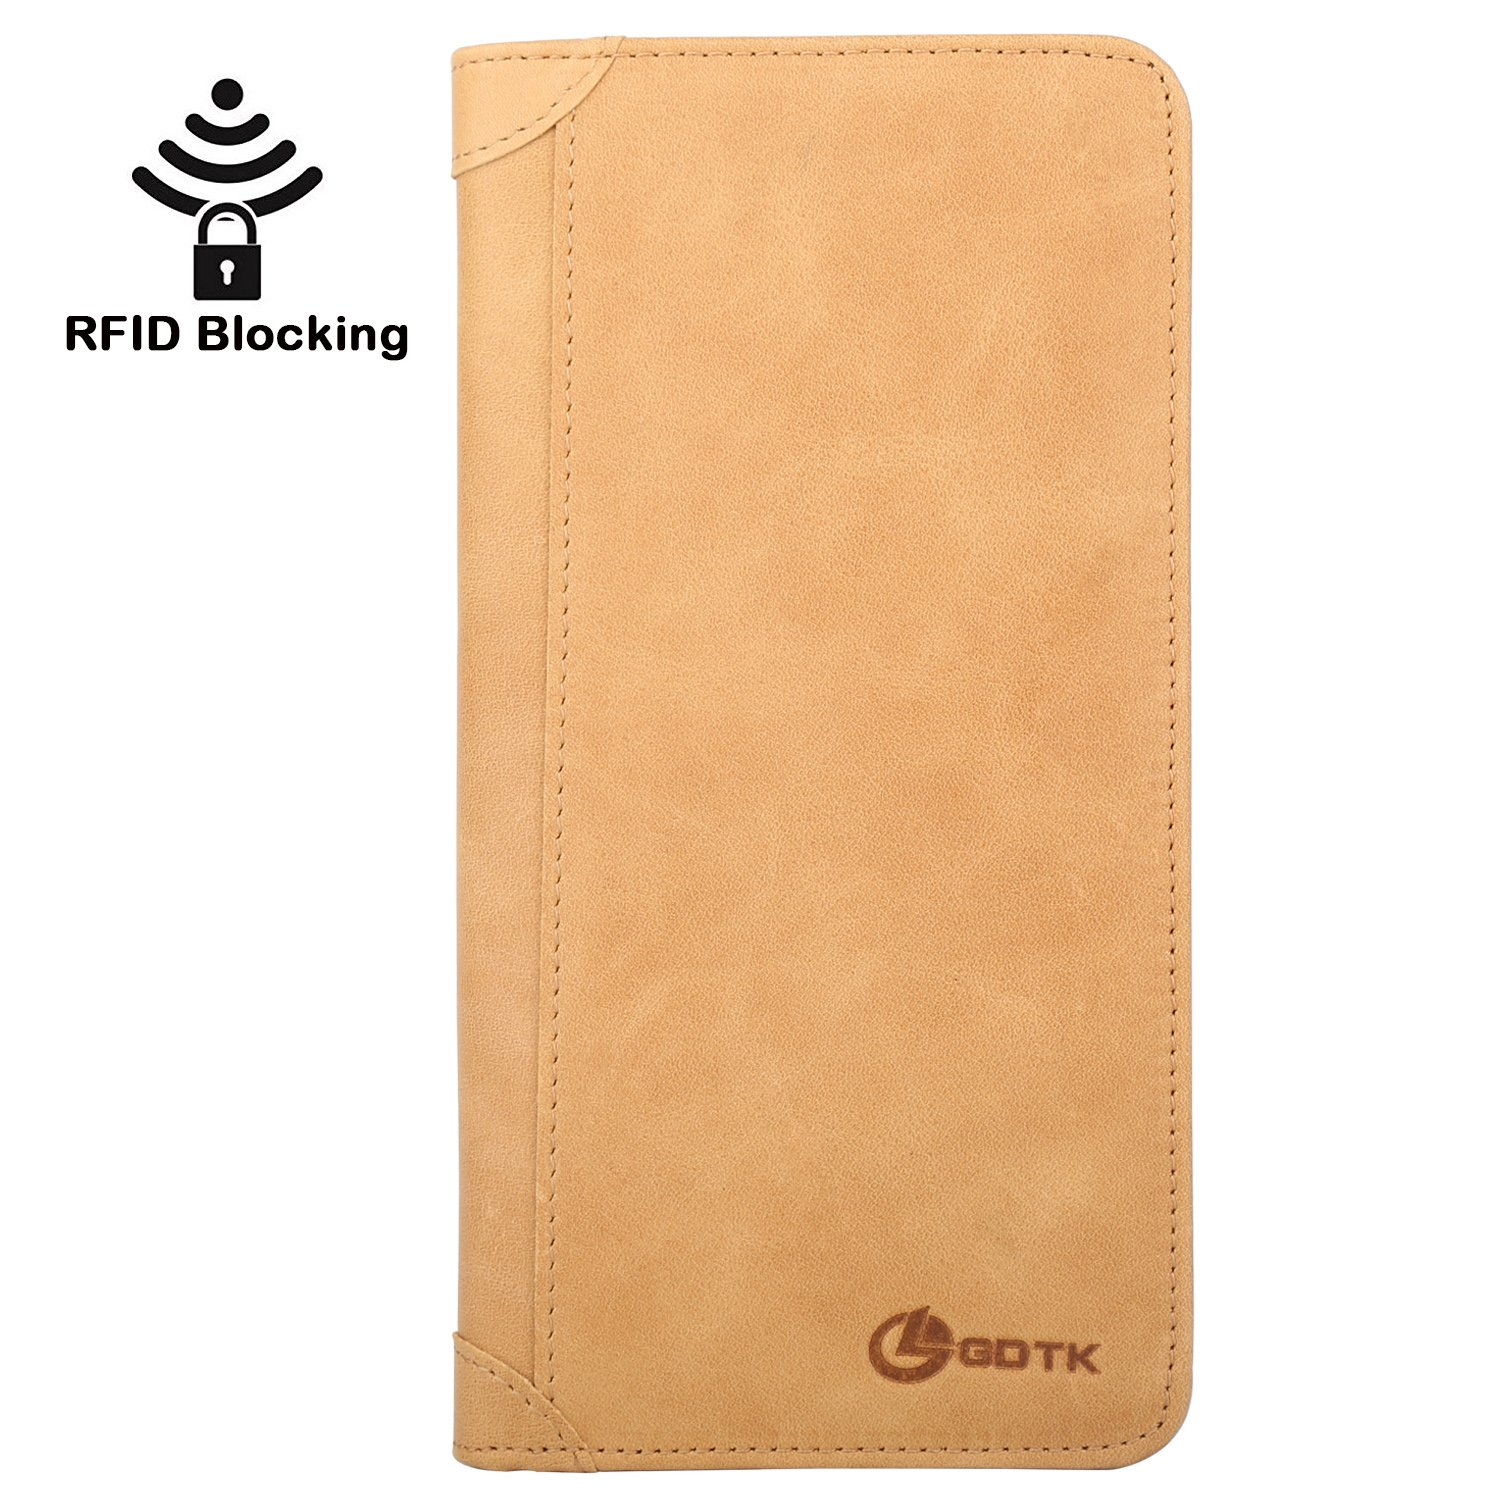 Women's Wallet - Genuine Italian Leather Long Bifold RFID Blocking Wallet (Tan)